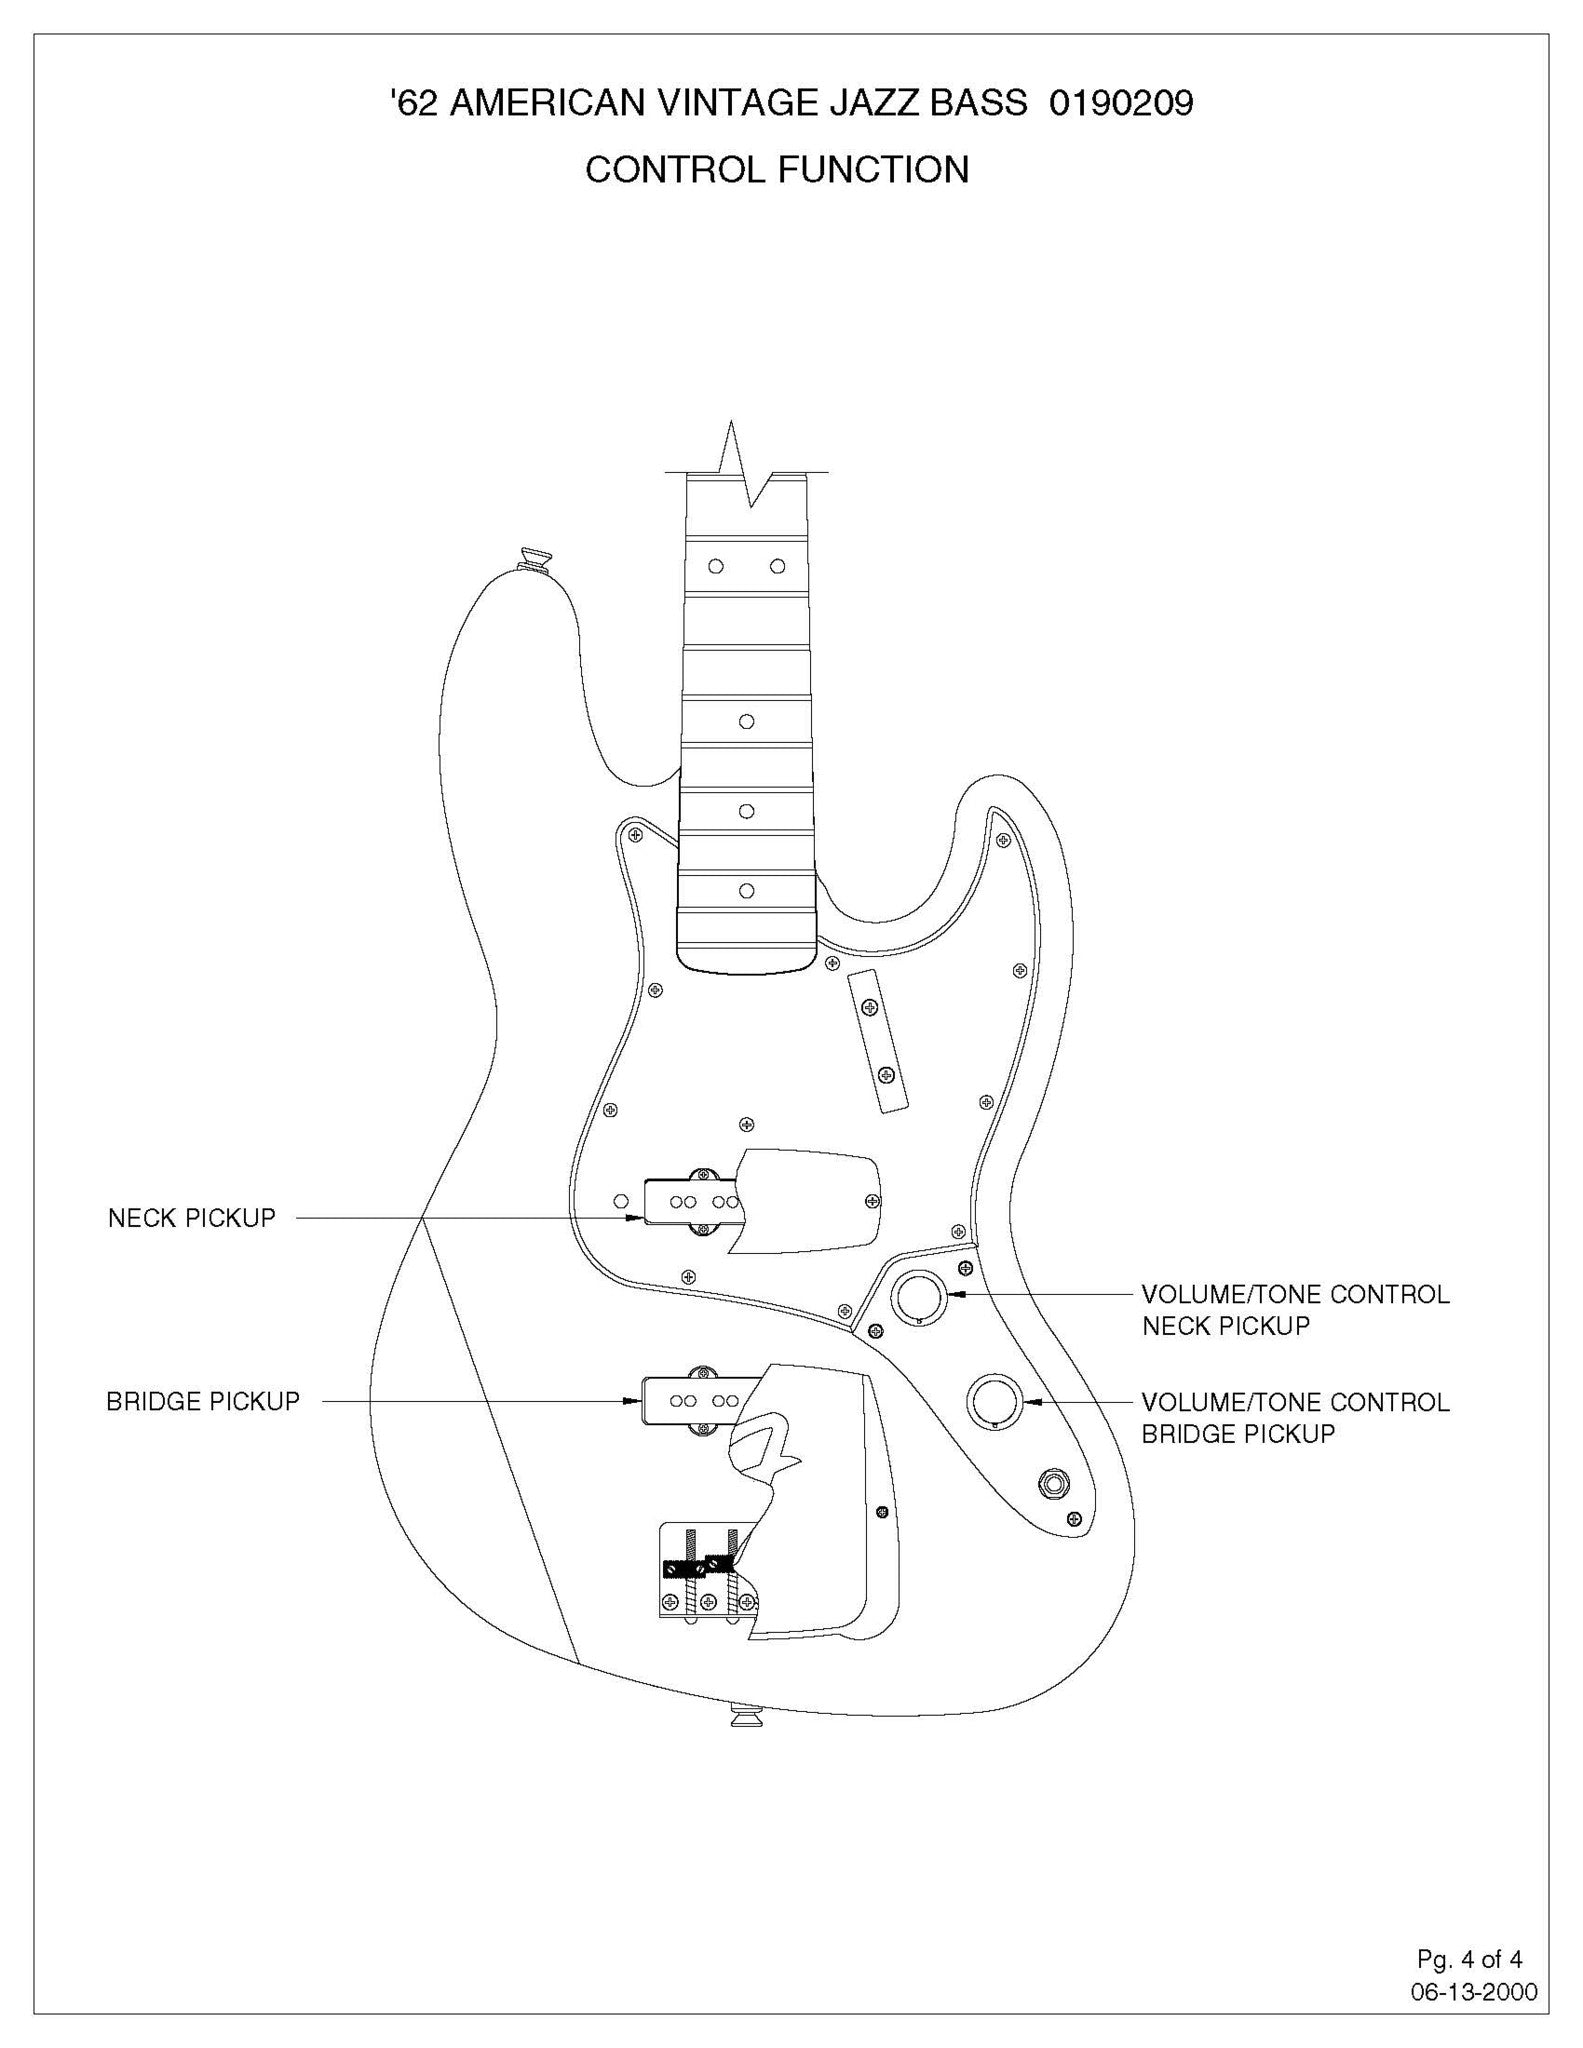 Awesome Ibanez Jem Wiring Small Bulldog Car Alarm Round Dragonfire Pickups Wiring Diagram Dimarzio Super Distortion Wiring Youthful Bulldog Car Alarm Wiring BlueFender 3 Way Switch Wiring Diagrams   Jazz Bass Concentric \u2013 Sigler Music